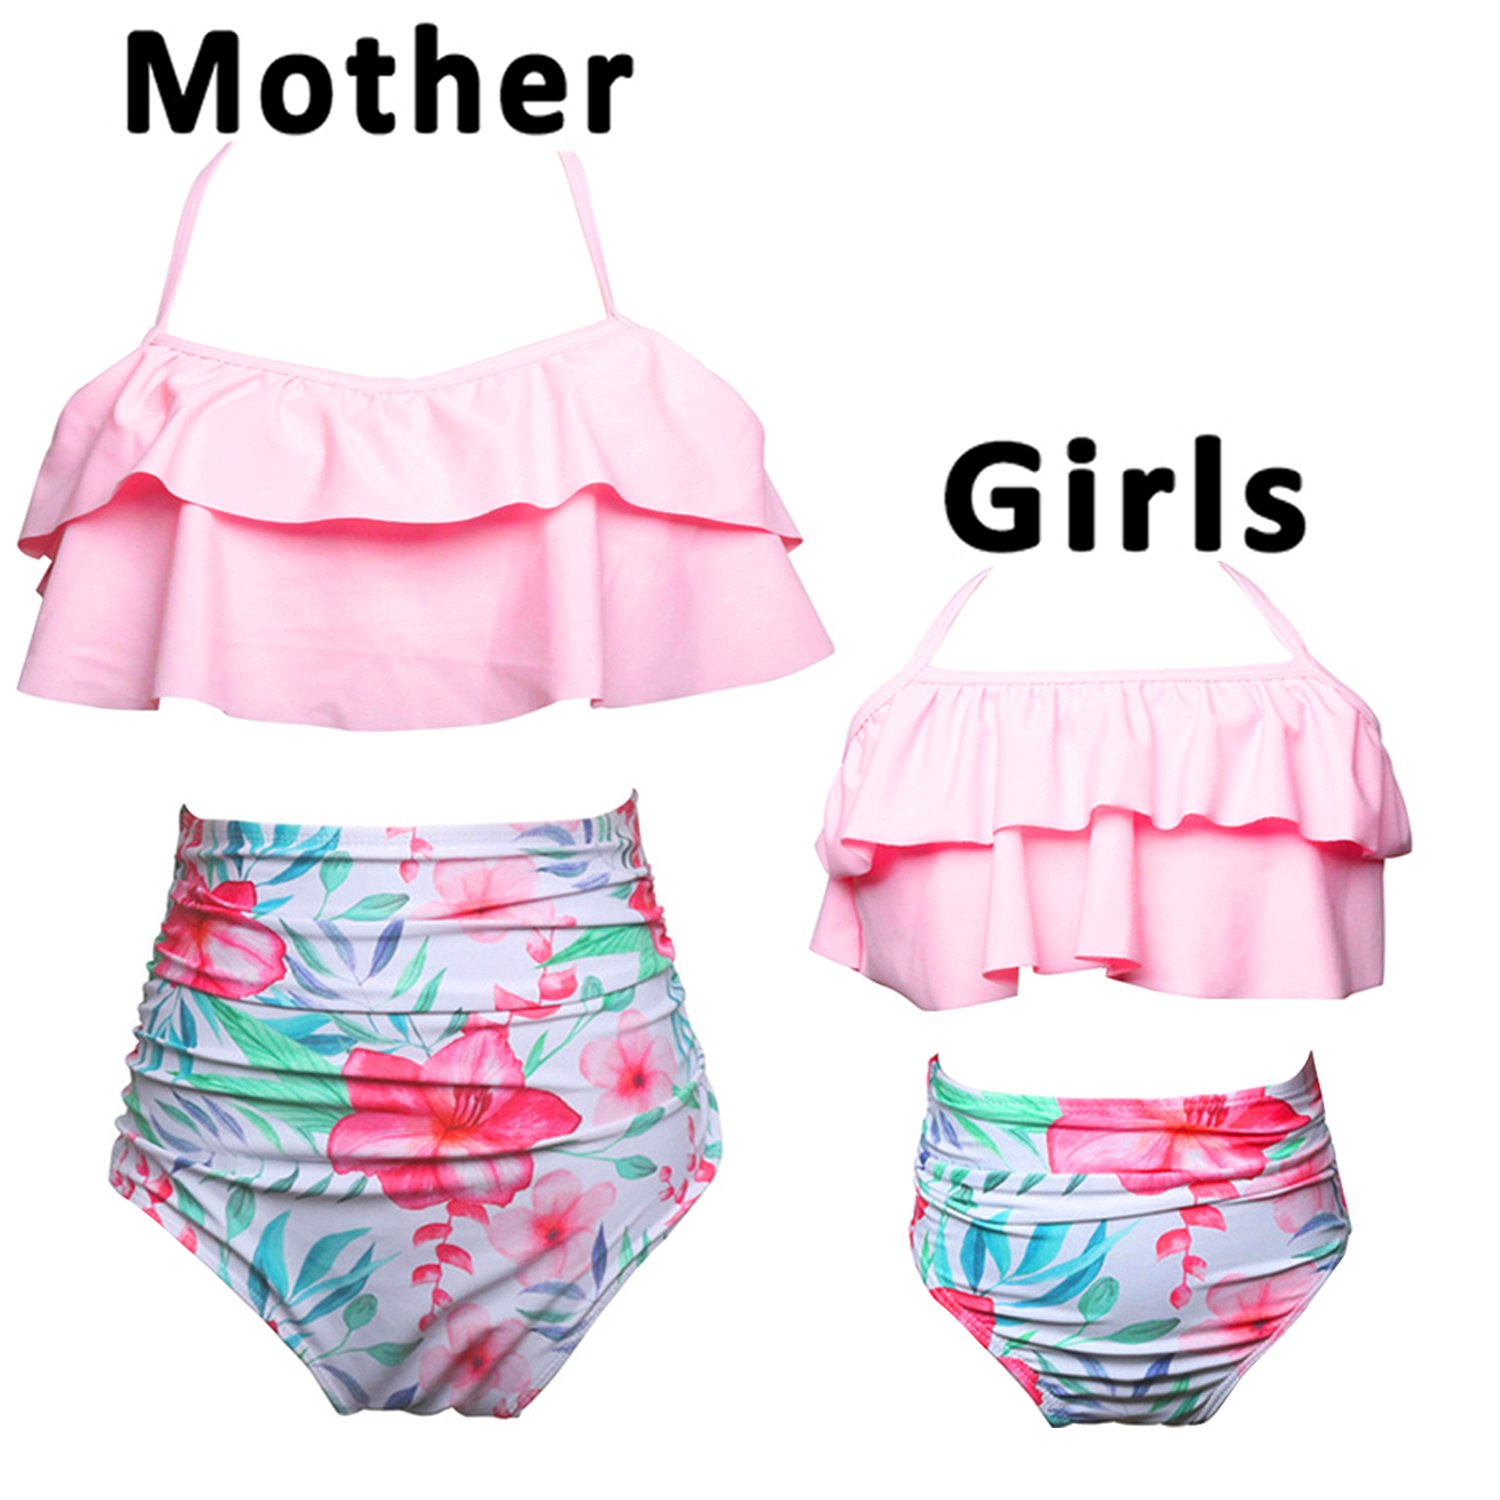 e23c4fe1a3b54 CHARMCZ Package Include:Family Matching Bikini:1x Ruffled Bikini Top+1x  High Waist Bottom. ????Women and Girls Size: We have adult baby girls size  ...